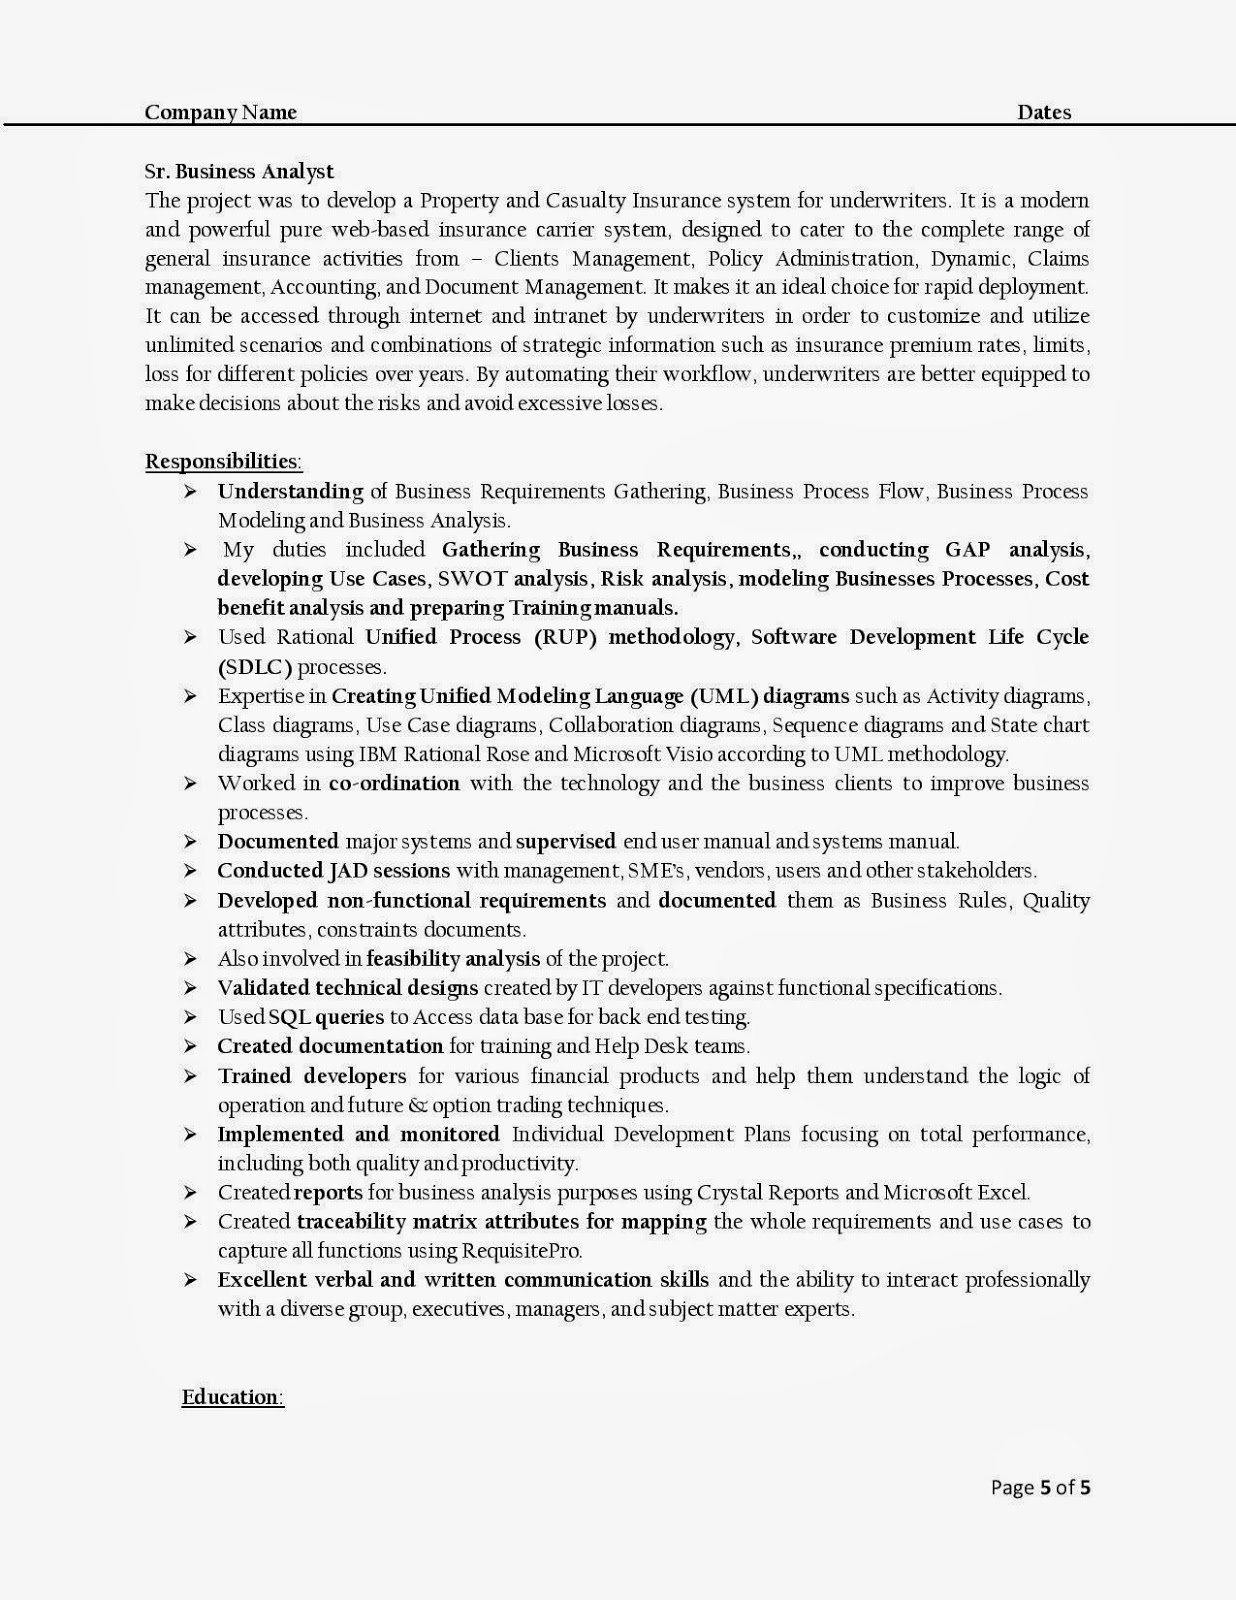 Cognos Resume Sample Essay Writer For All Kinds Of Papers Cognos Resume